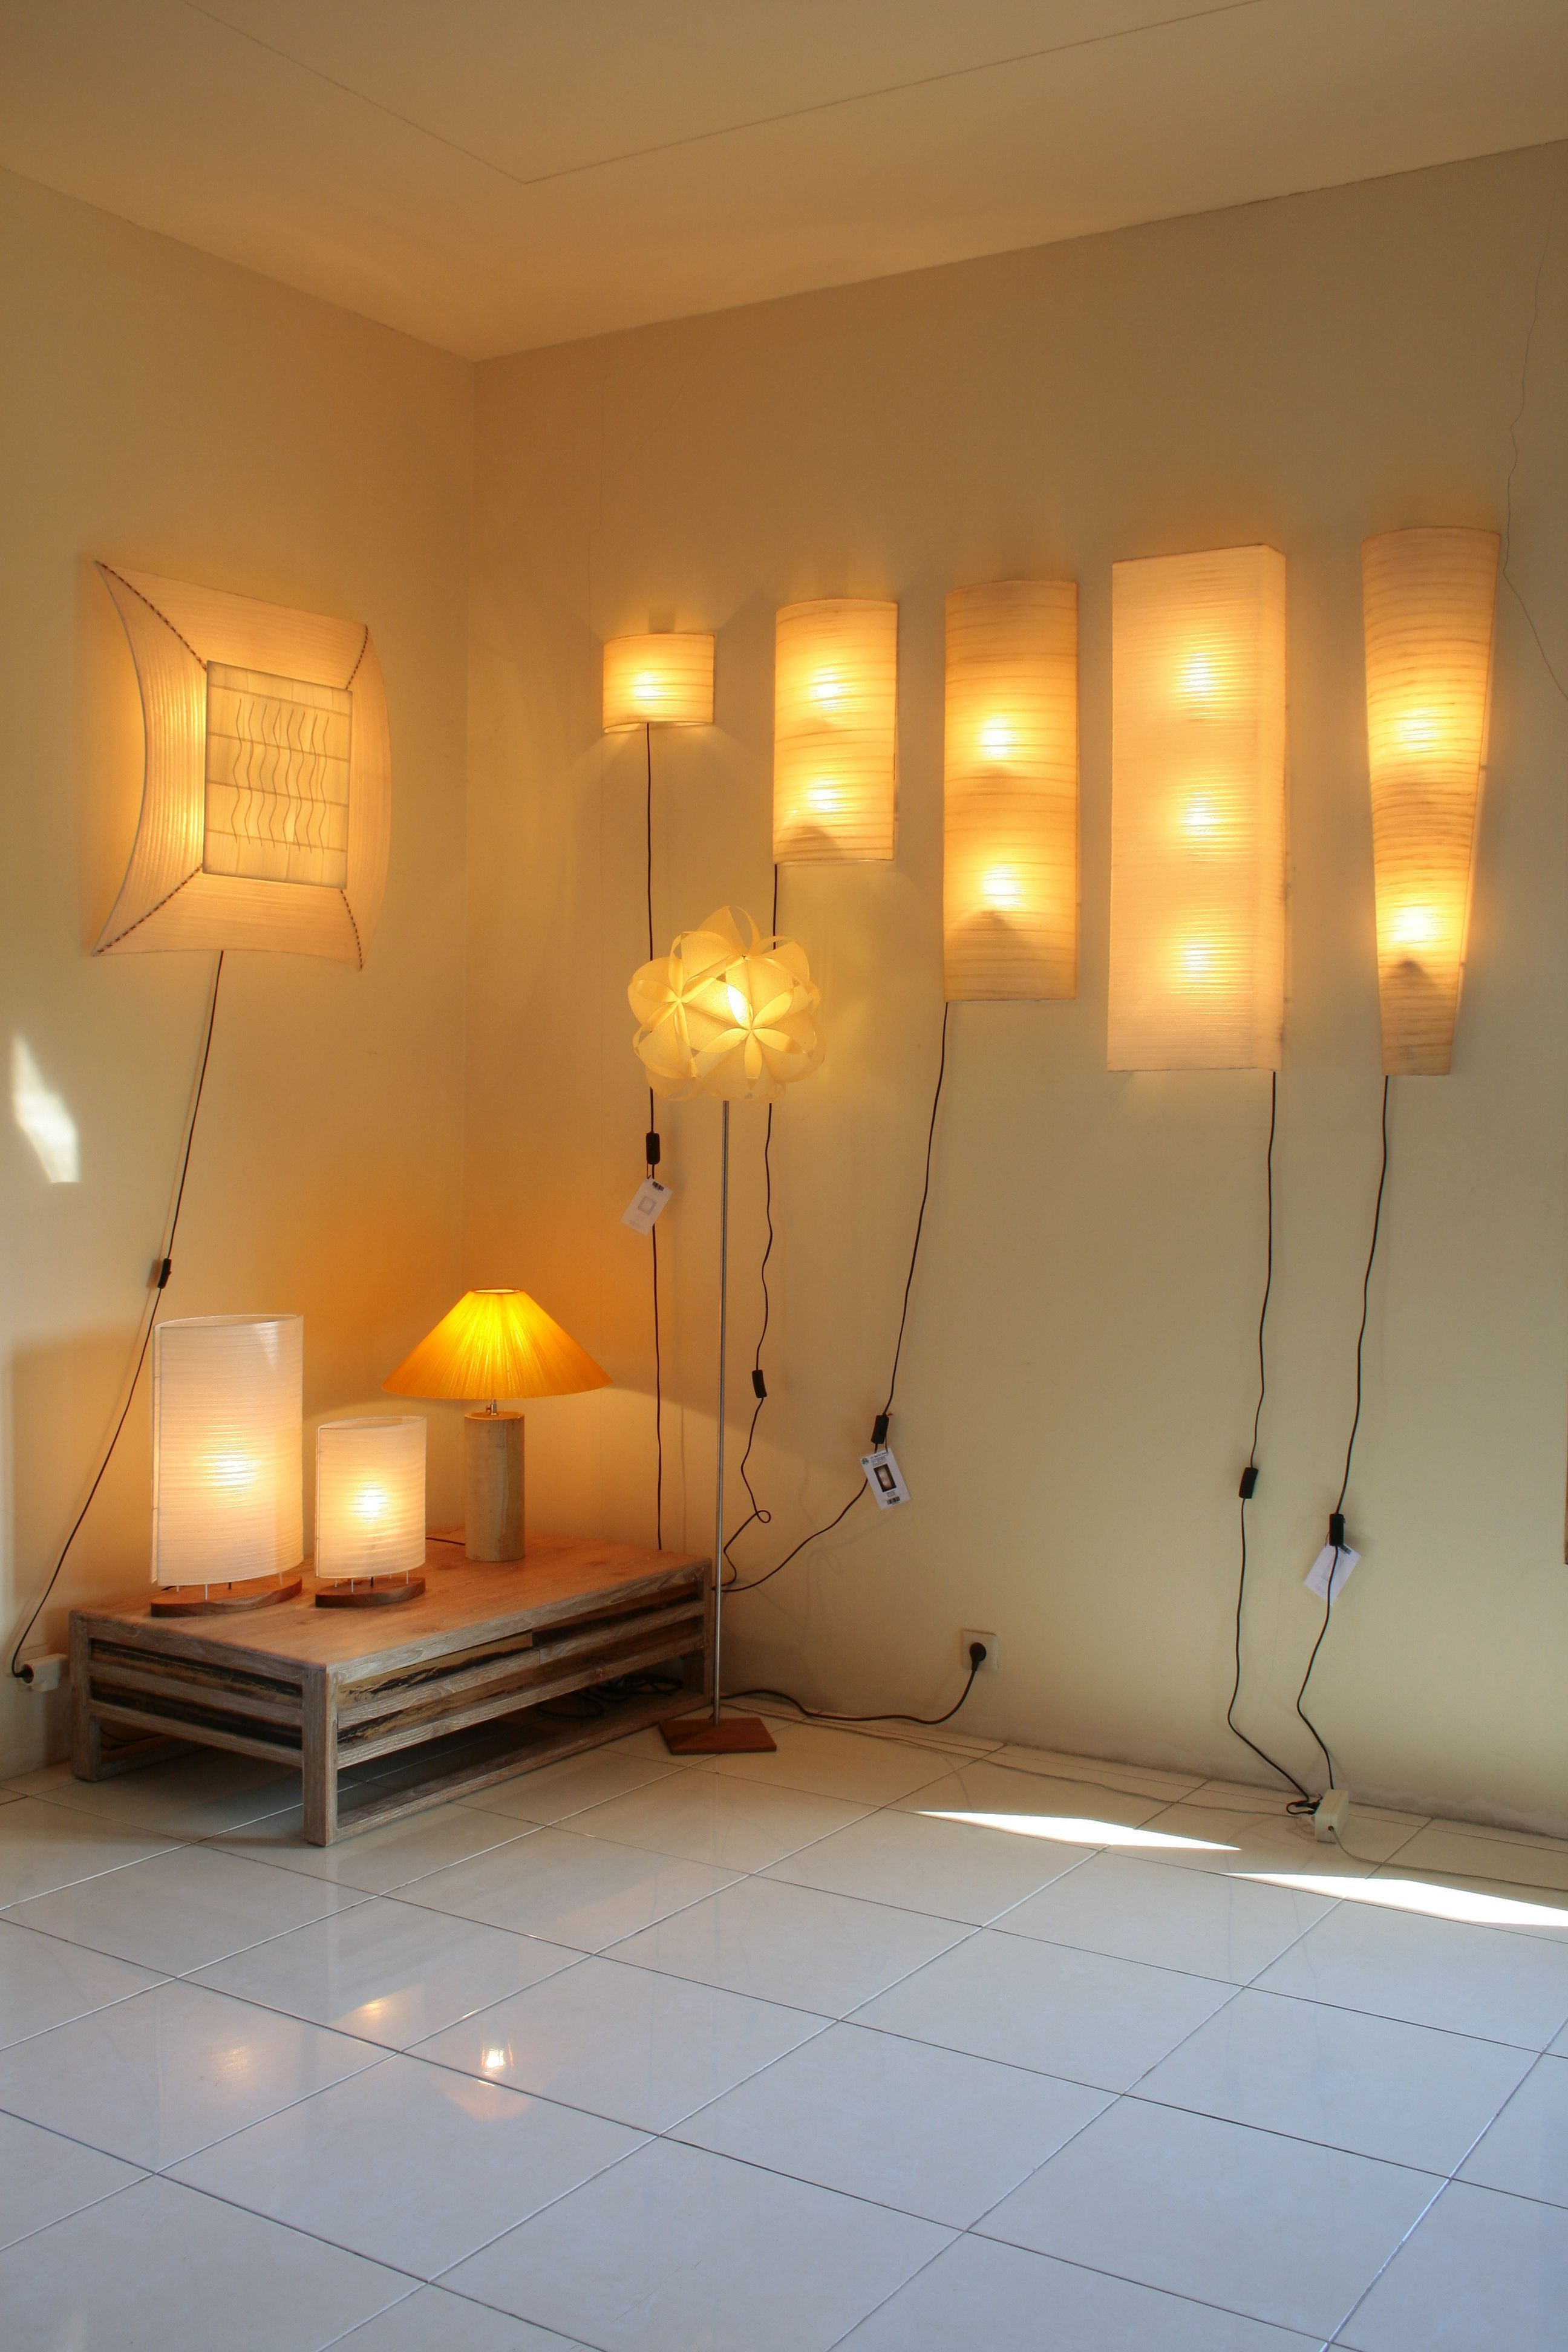 7 sublime cool ideas wooden lamp shades wood lamp shades frame rh pinterest com